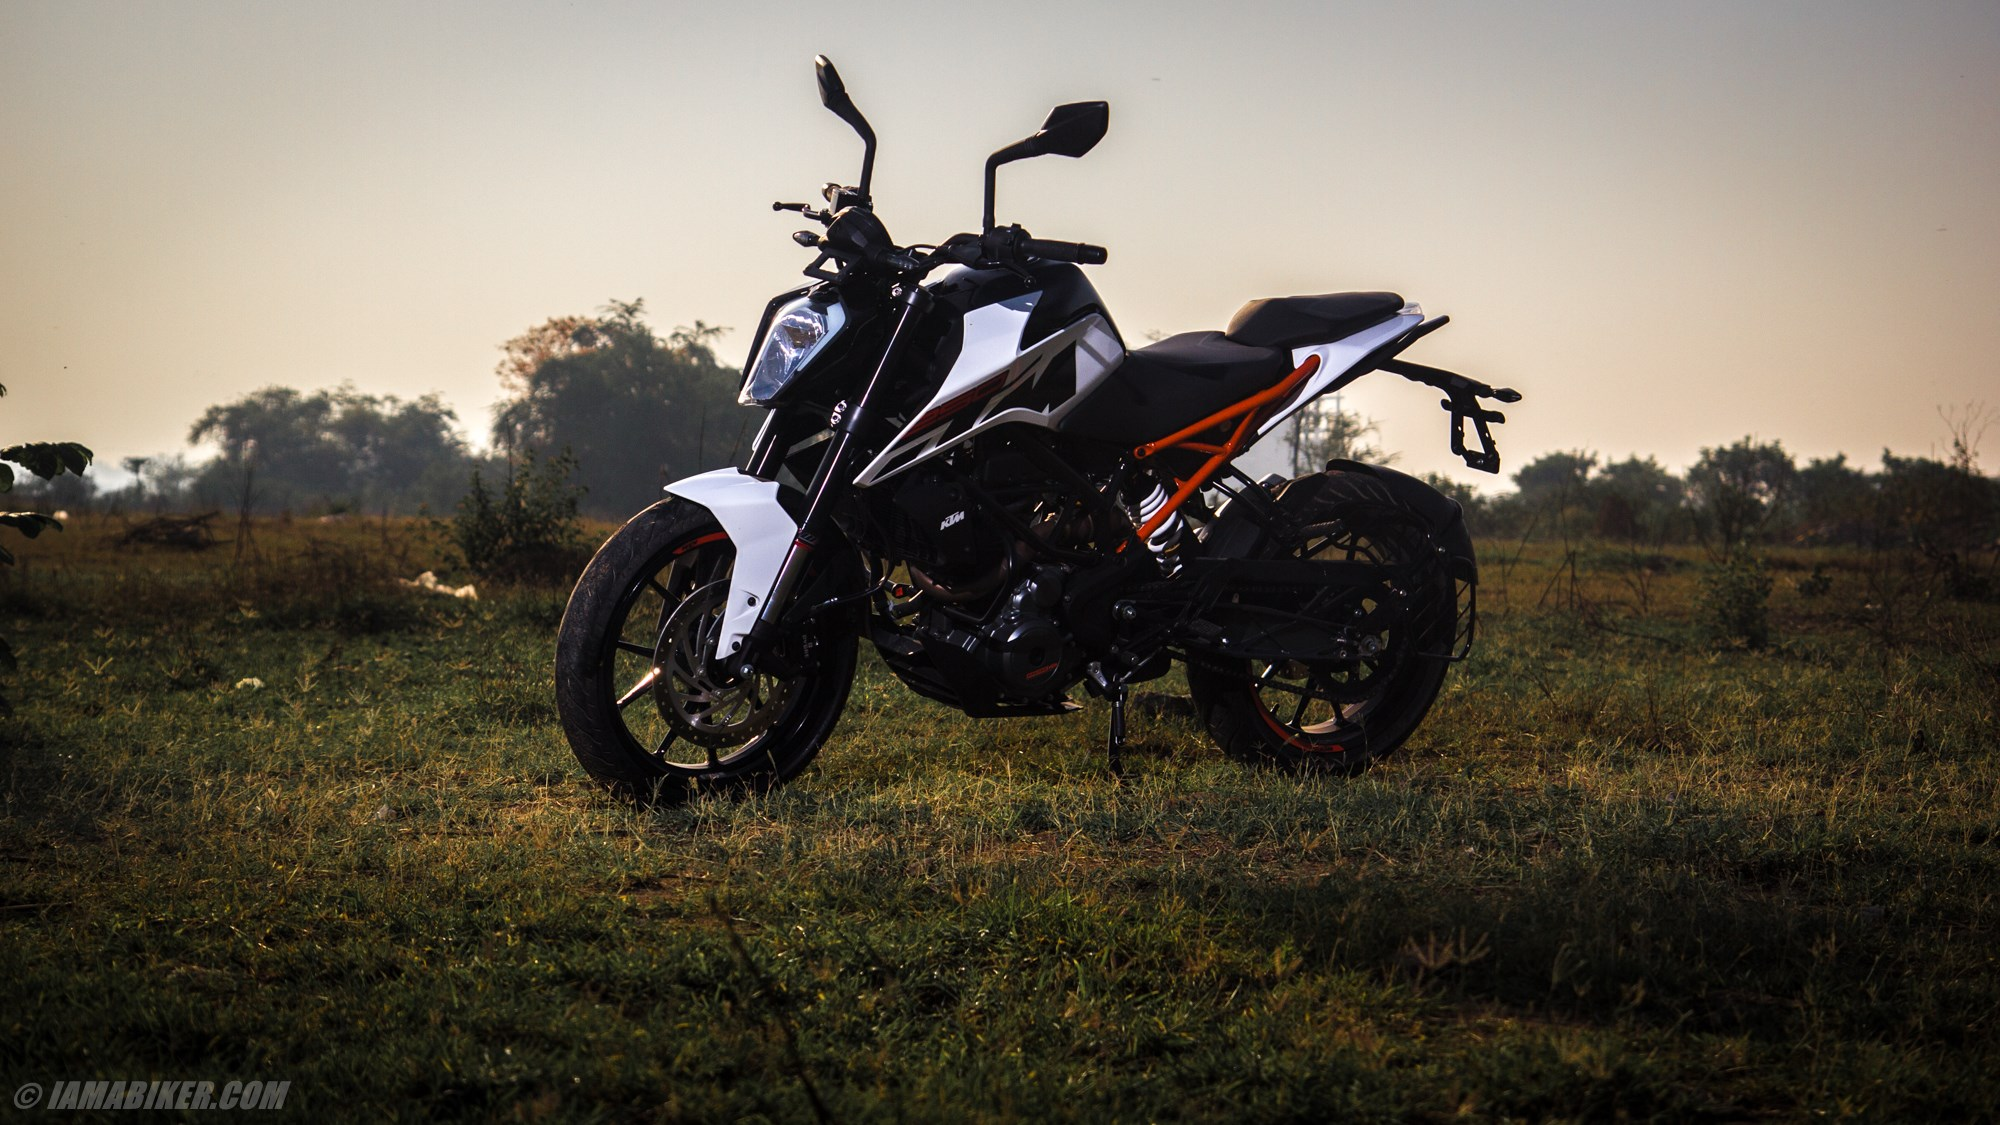 Ktm Duke 250 Hd Wallpapers 5 Iamabiker